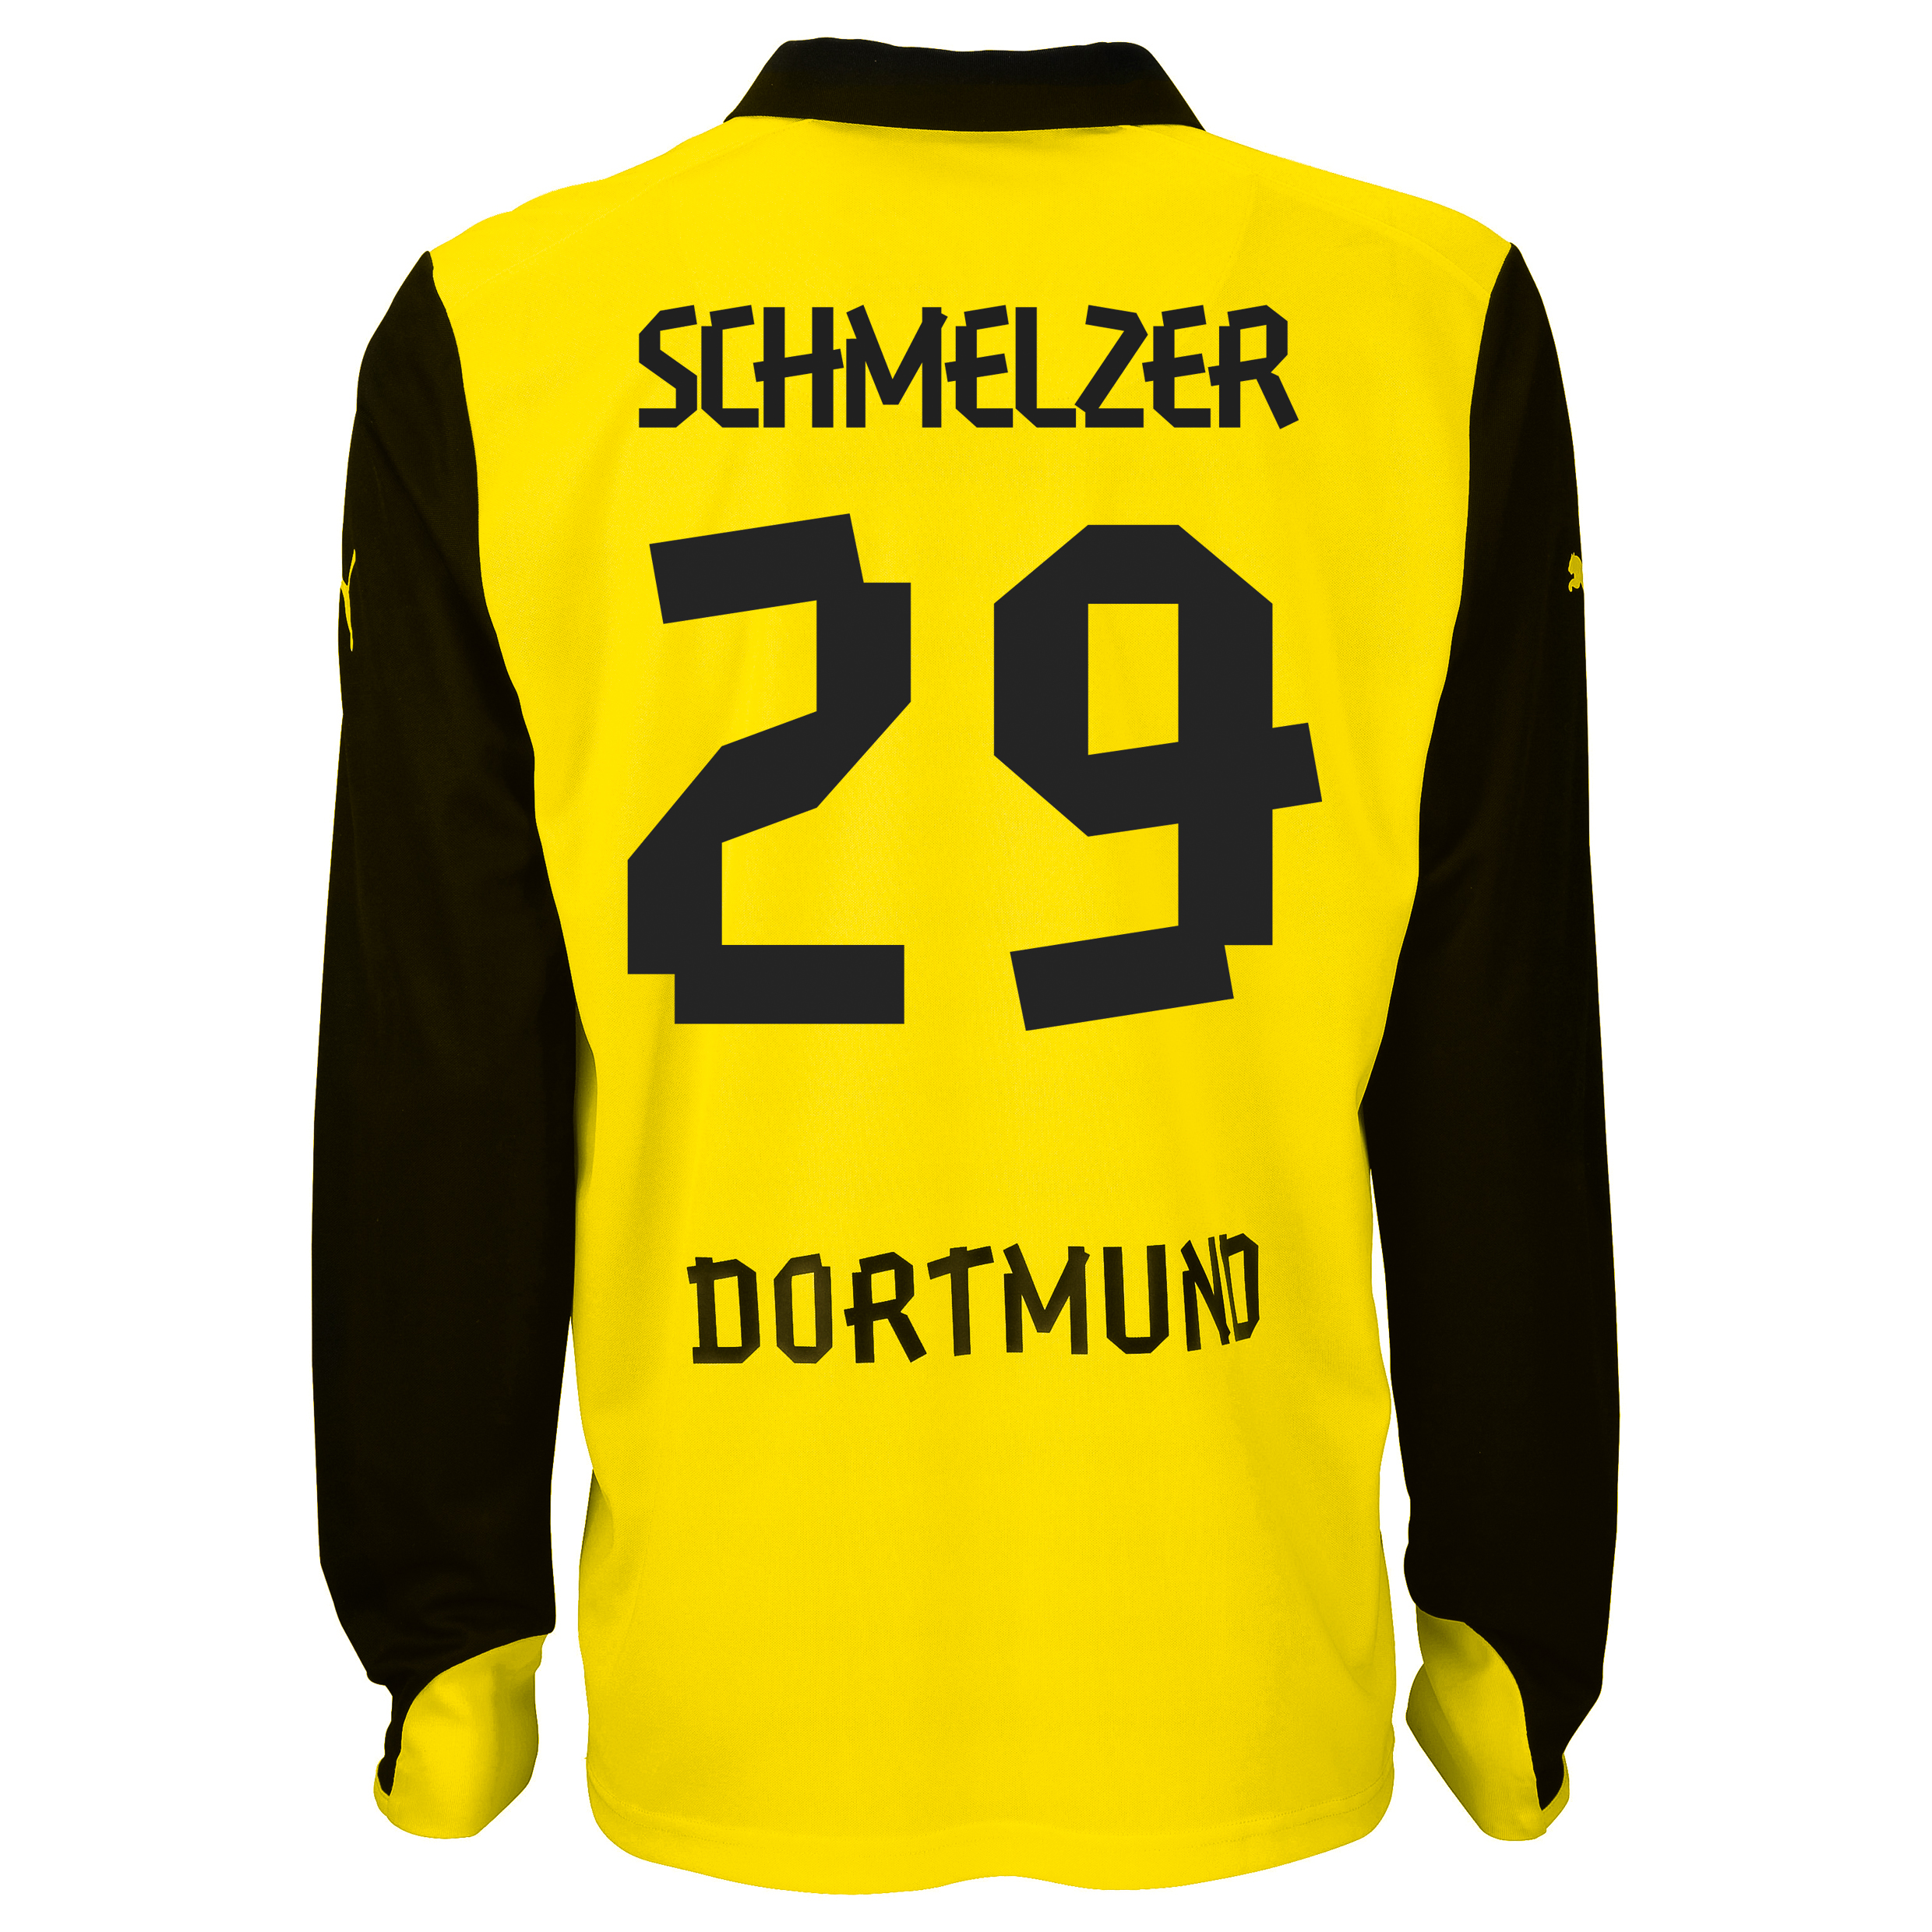 BVB International Home Shirt 2013/14 - Long Sleeve with Schmelzer 29 printing